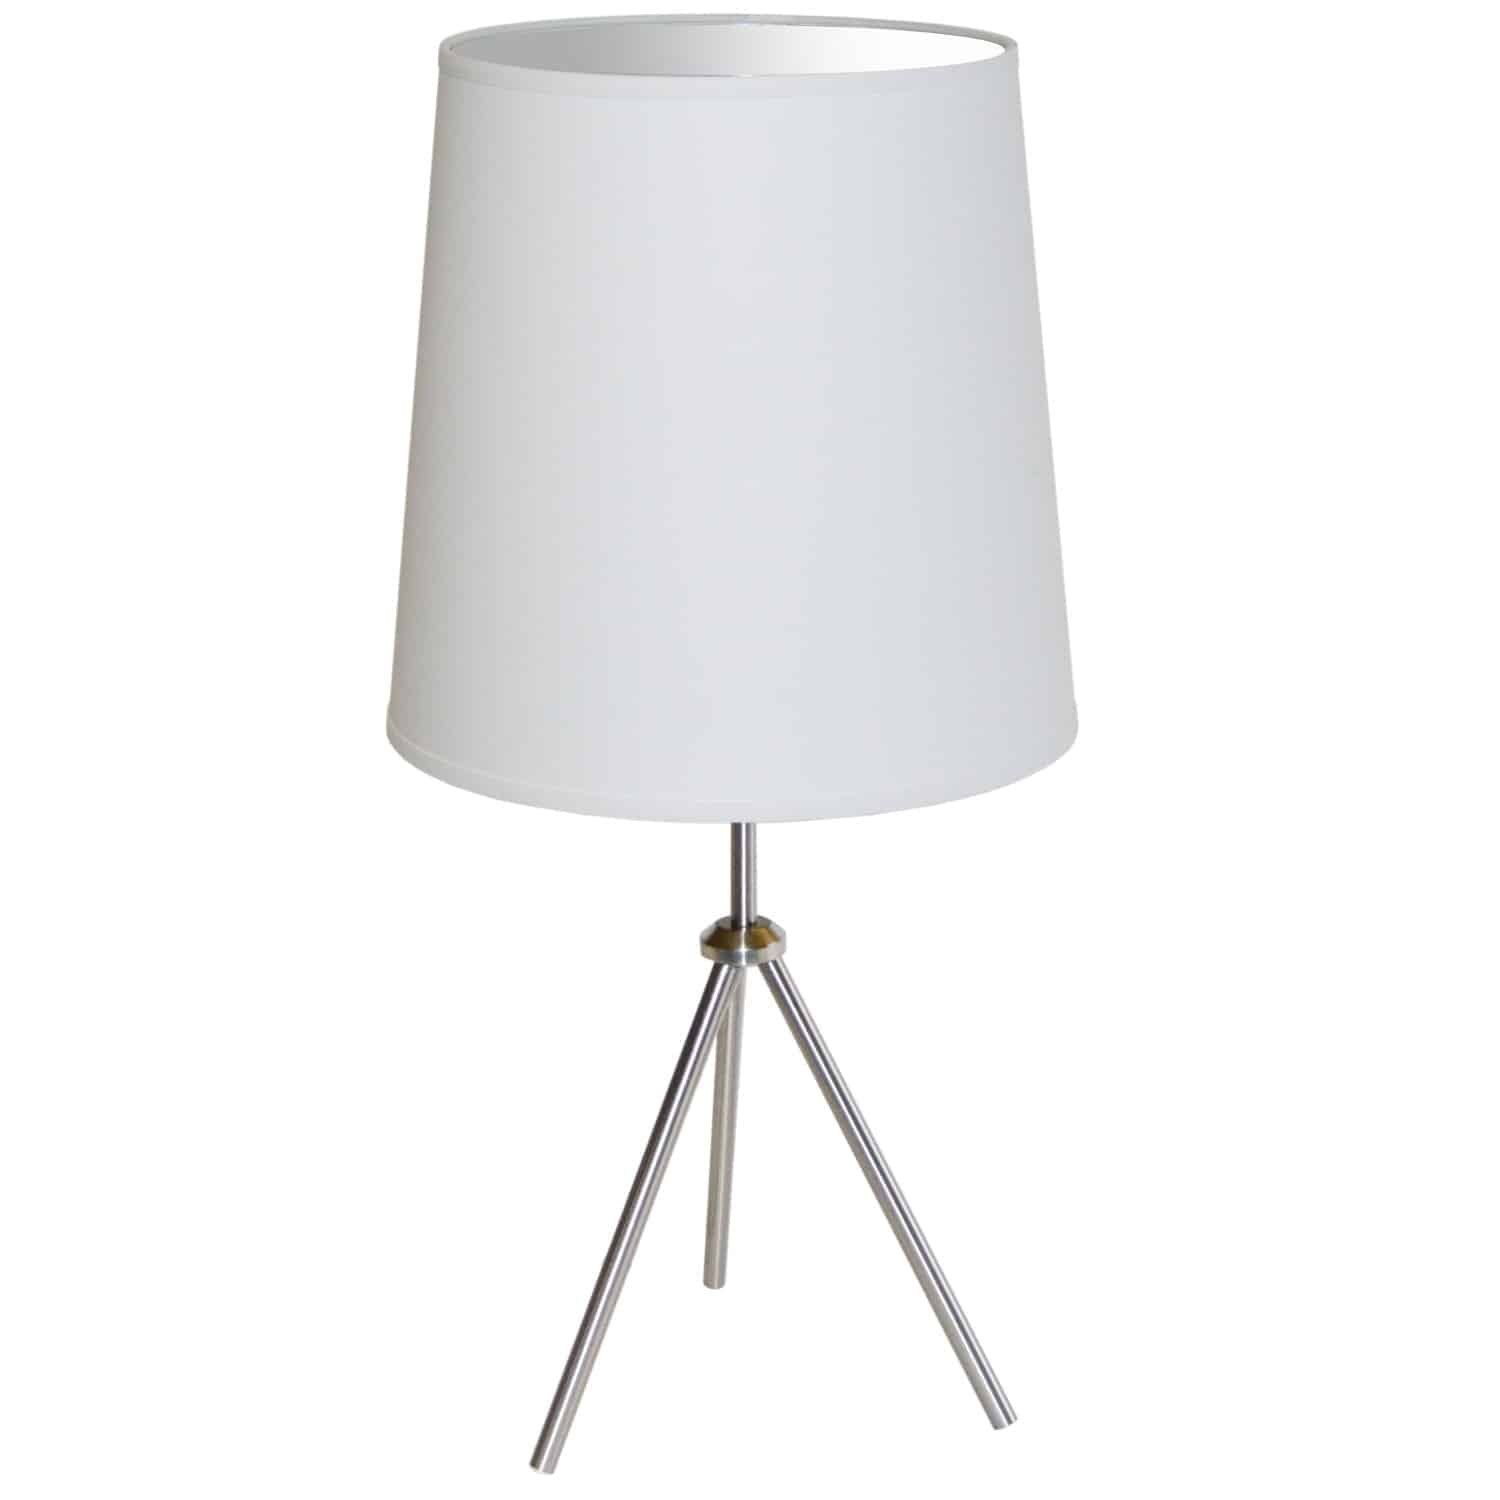 1 Light 3 Leg Drum Table Fixture w/White Shade